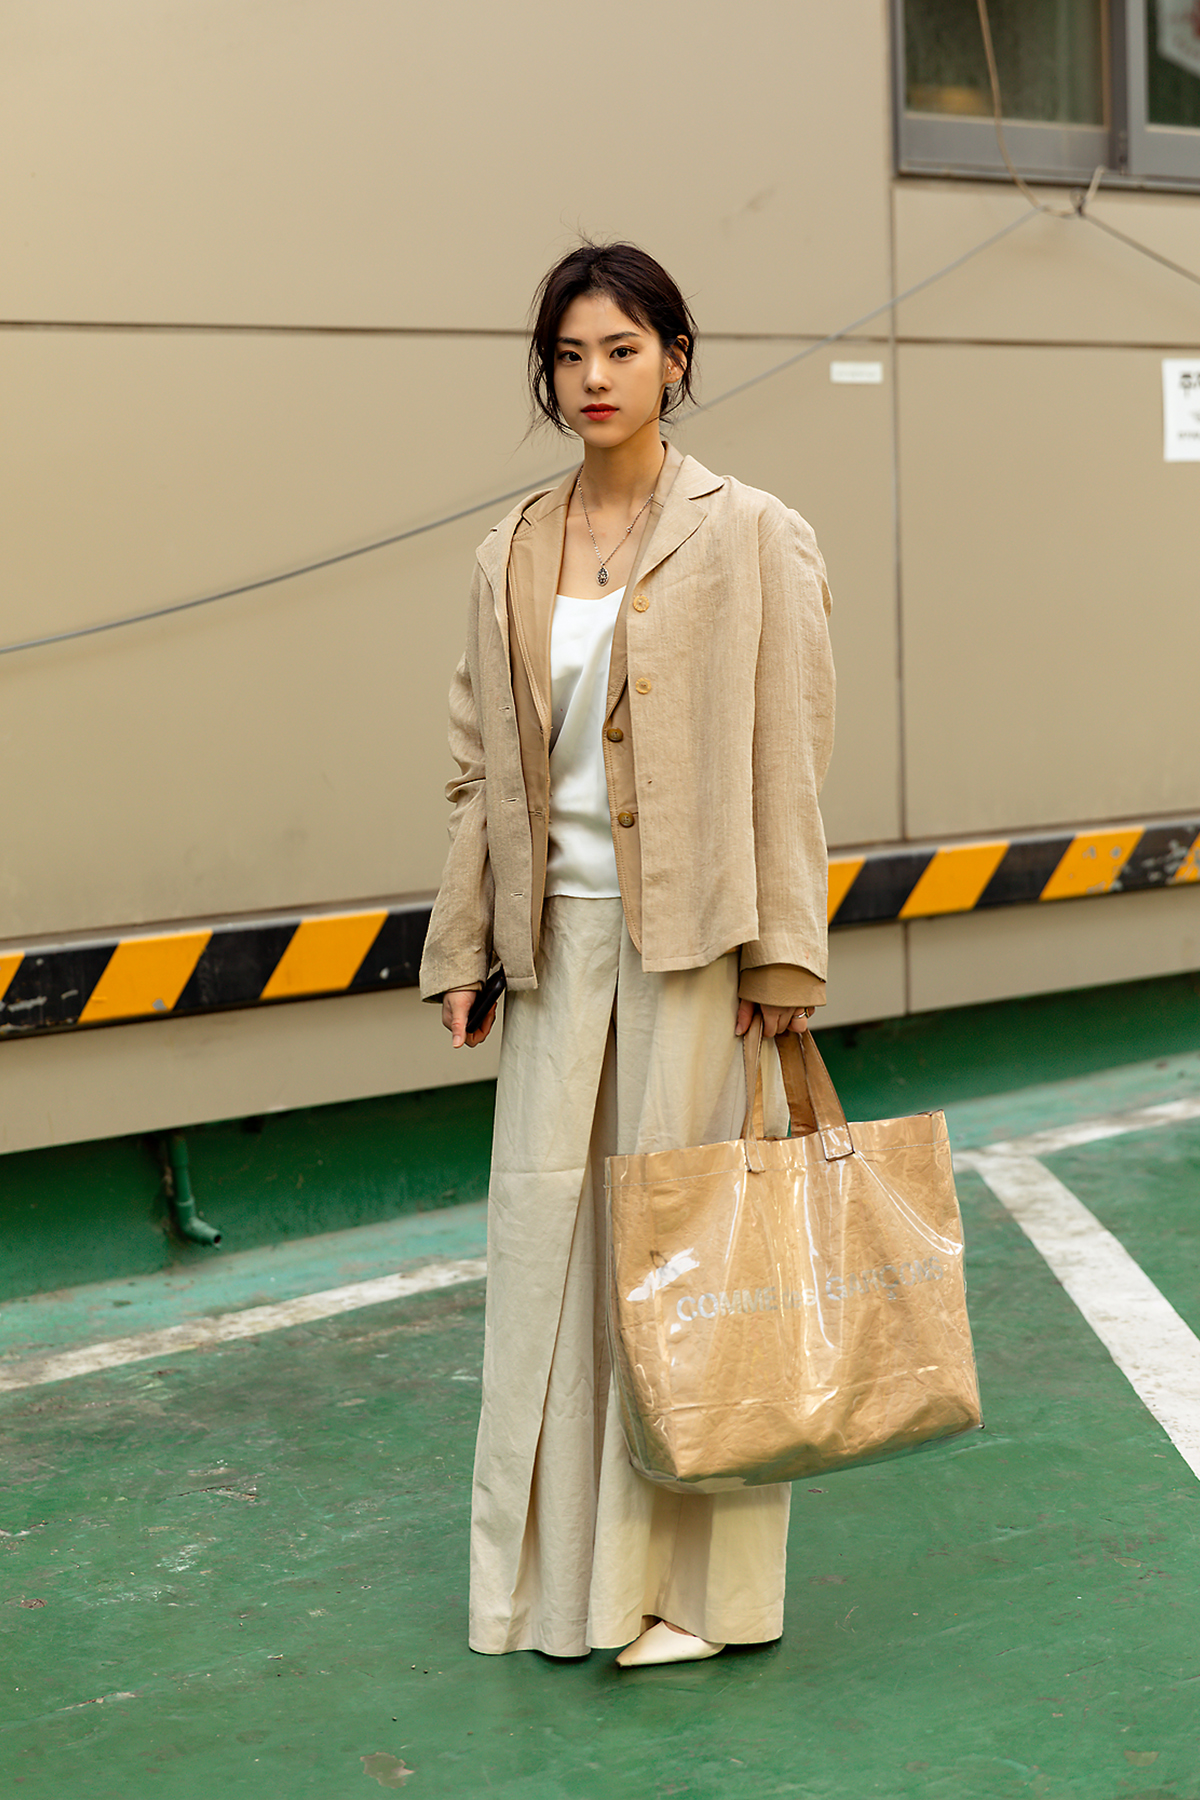 First story of Seoul women's street style in spring of May 2019